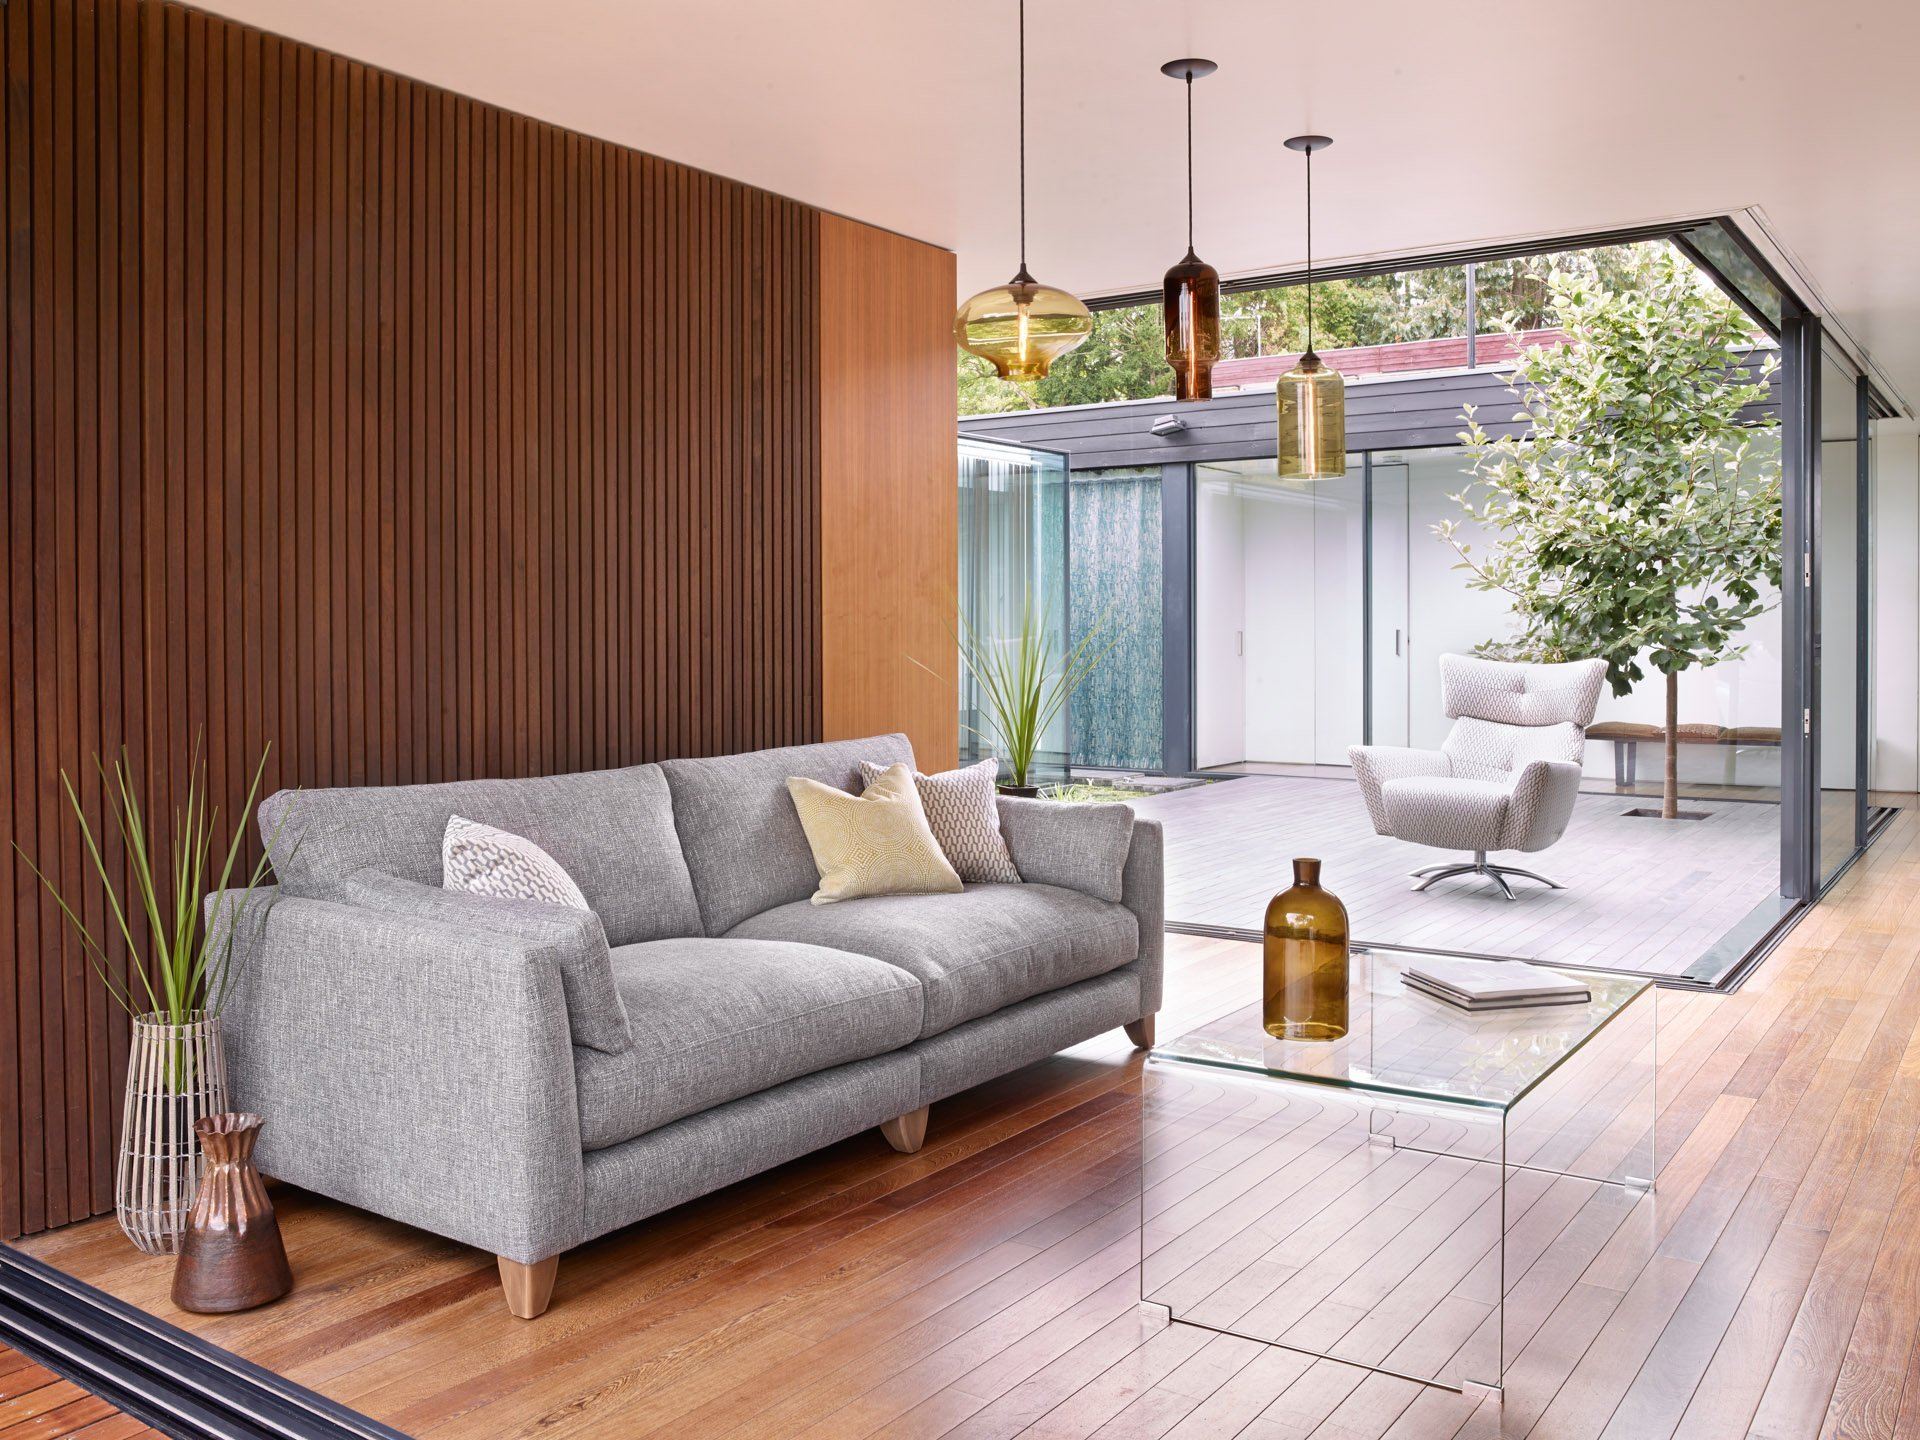 Interior photography video for sofa furniture catalogues